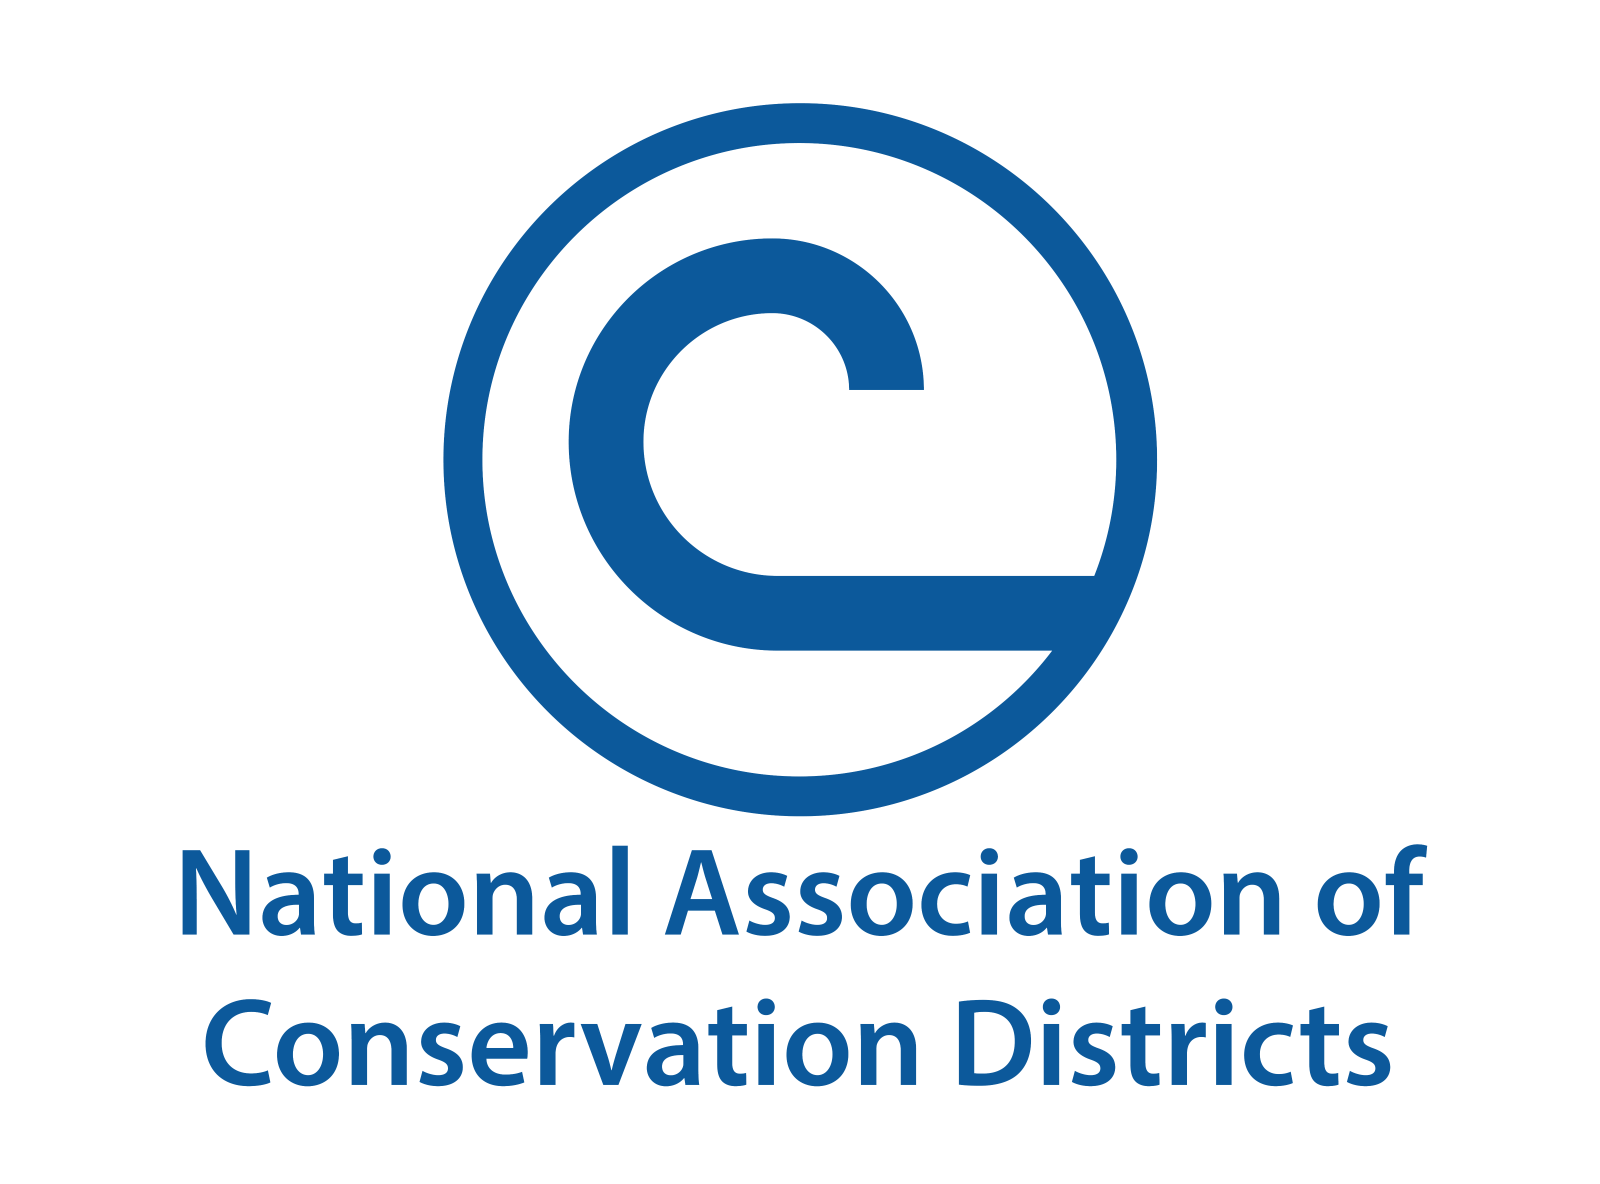 National-Association-of-Conservation-Districts